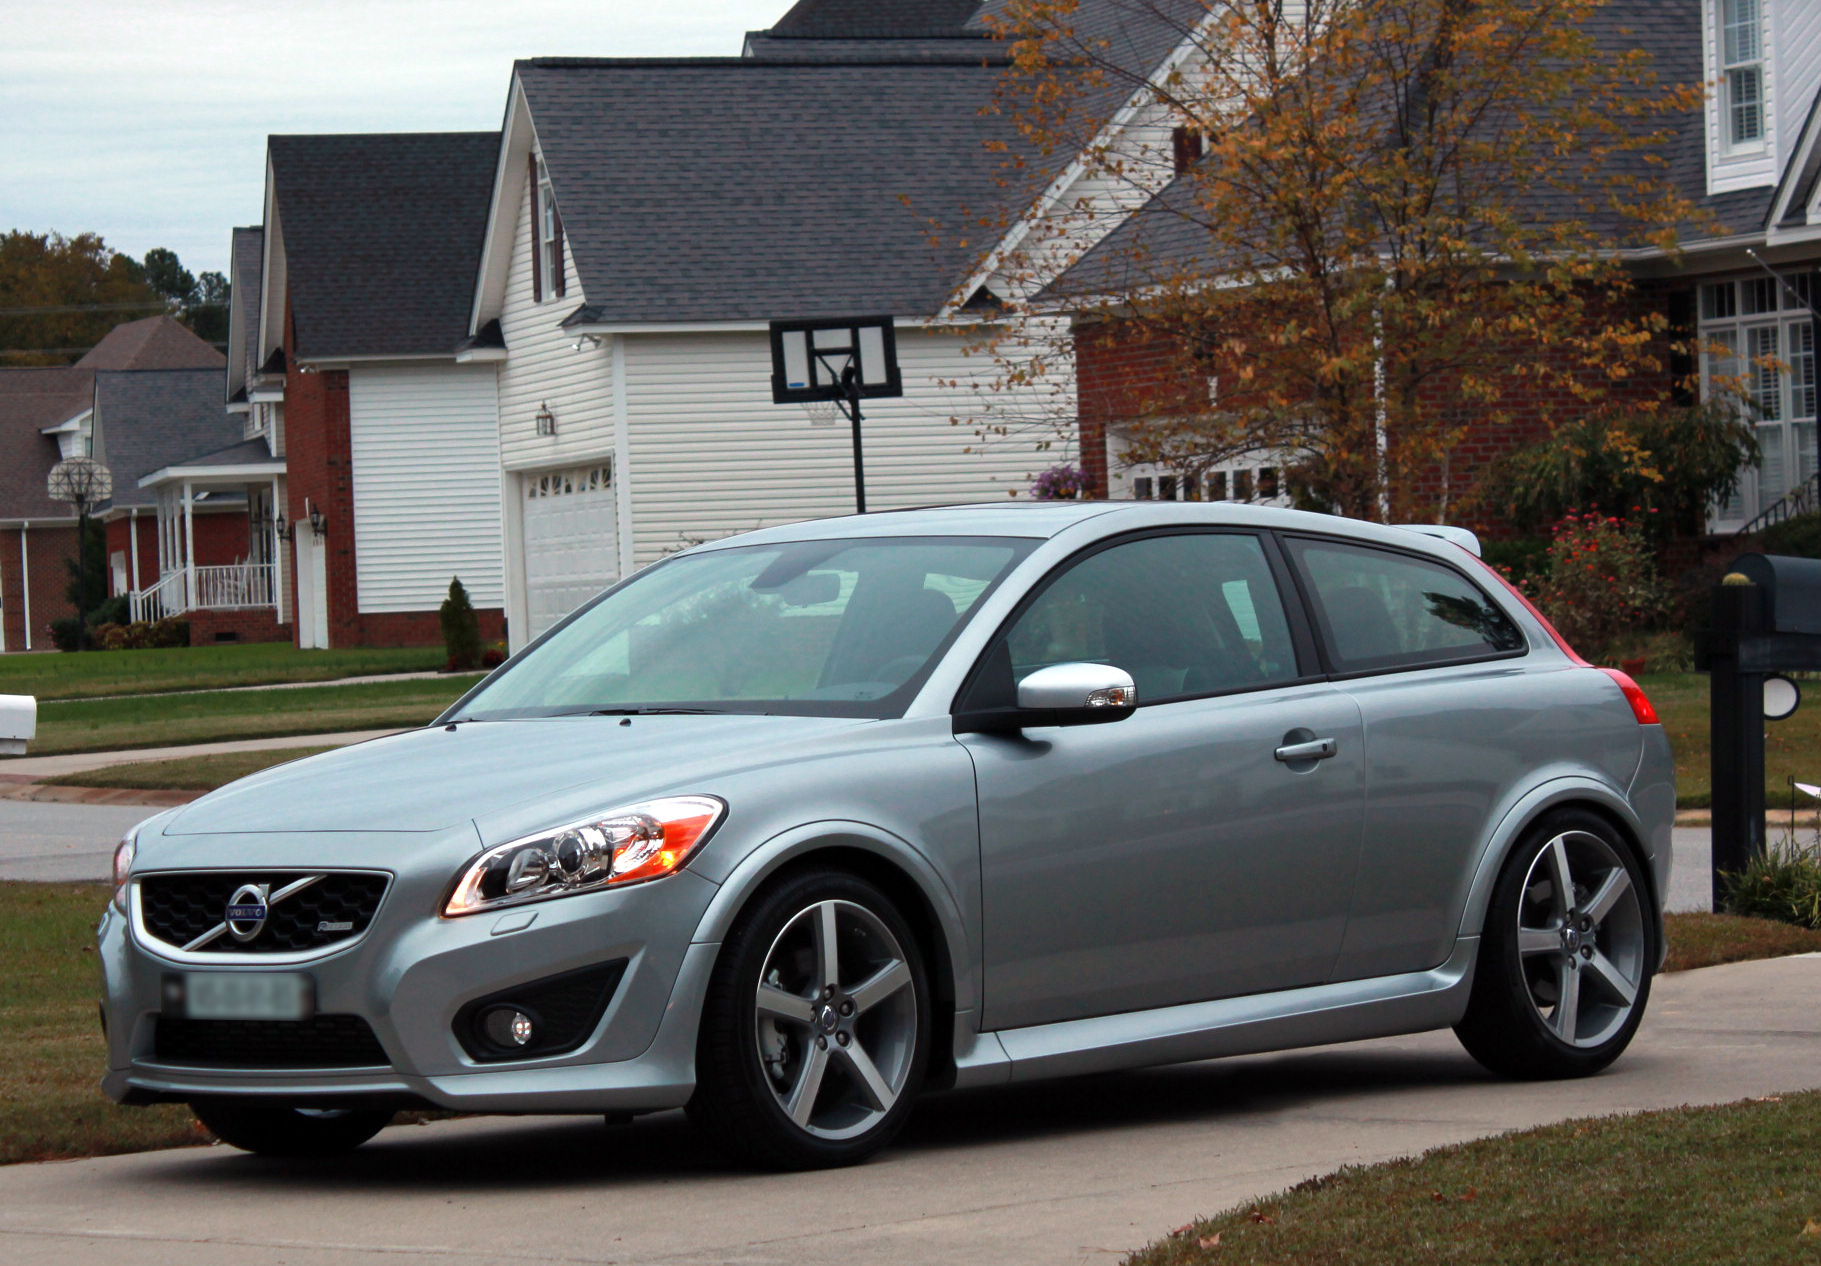 VOLVO C30 - Review and photos